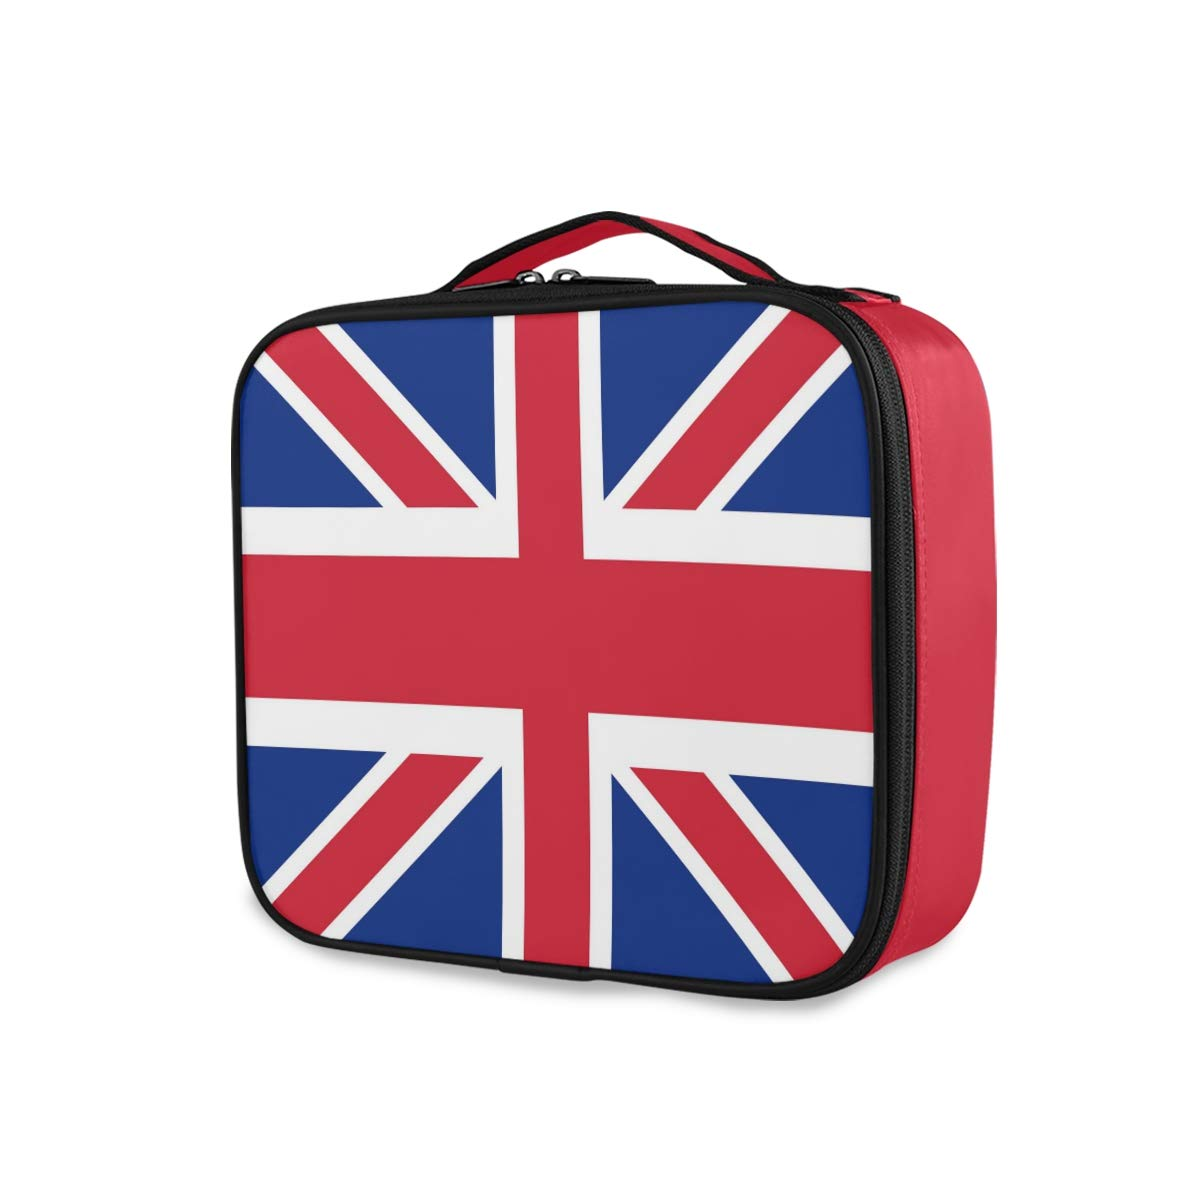 British Flag Travel Makeup Train Case Portable Organizer Cosmetic Bag for Women